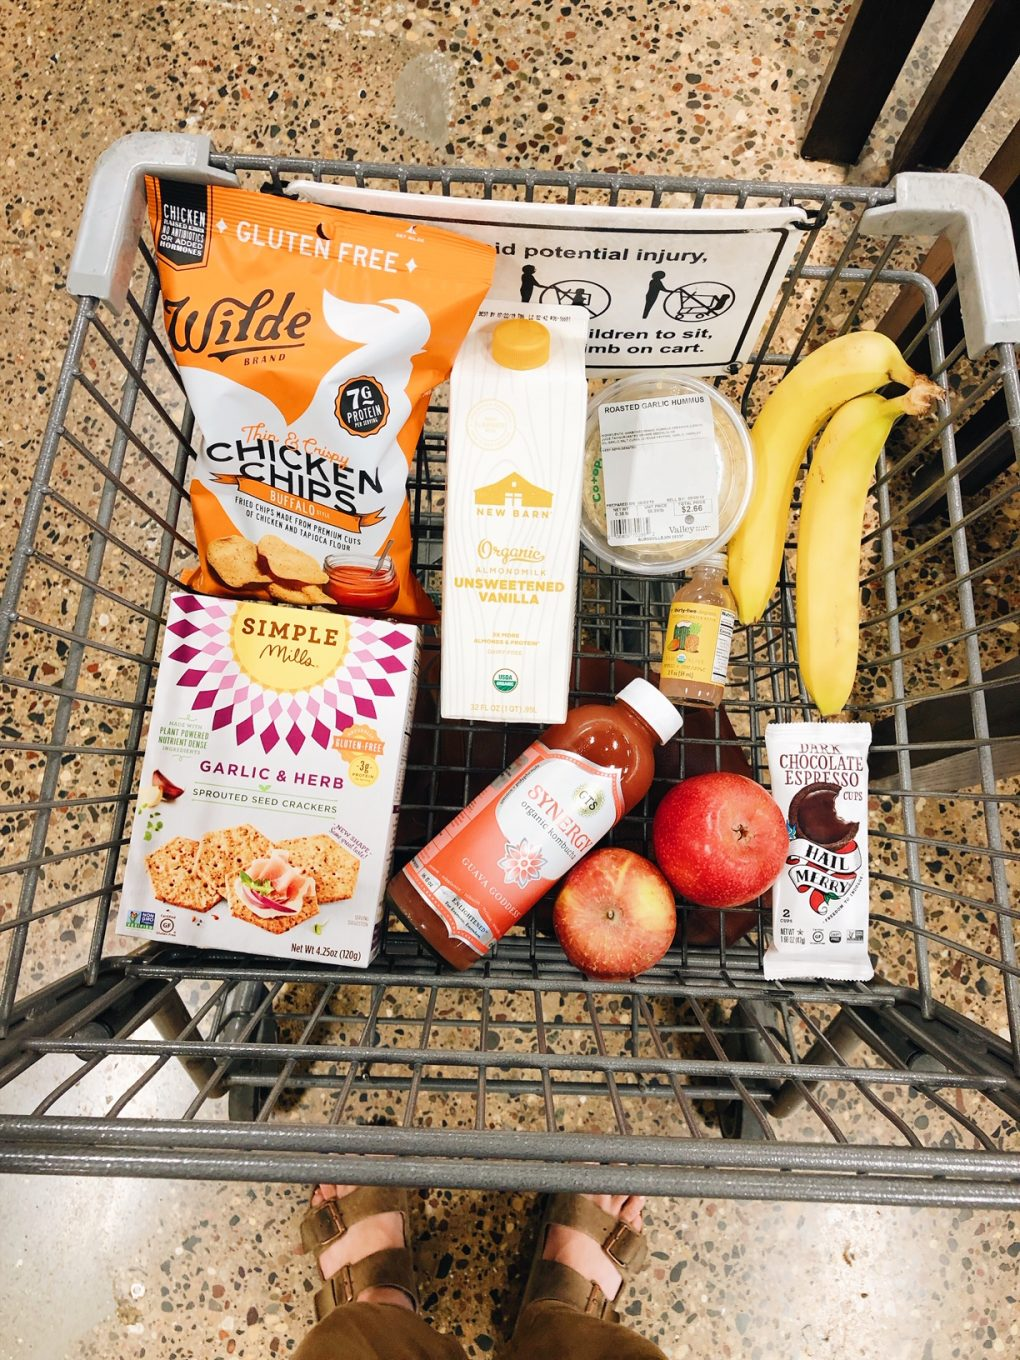 Overhead view of a grocery cart with snacks, fruit, kombucha, almond milk, and chocolate